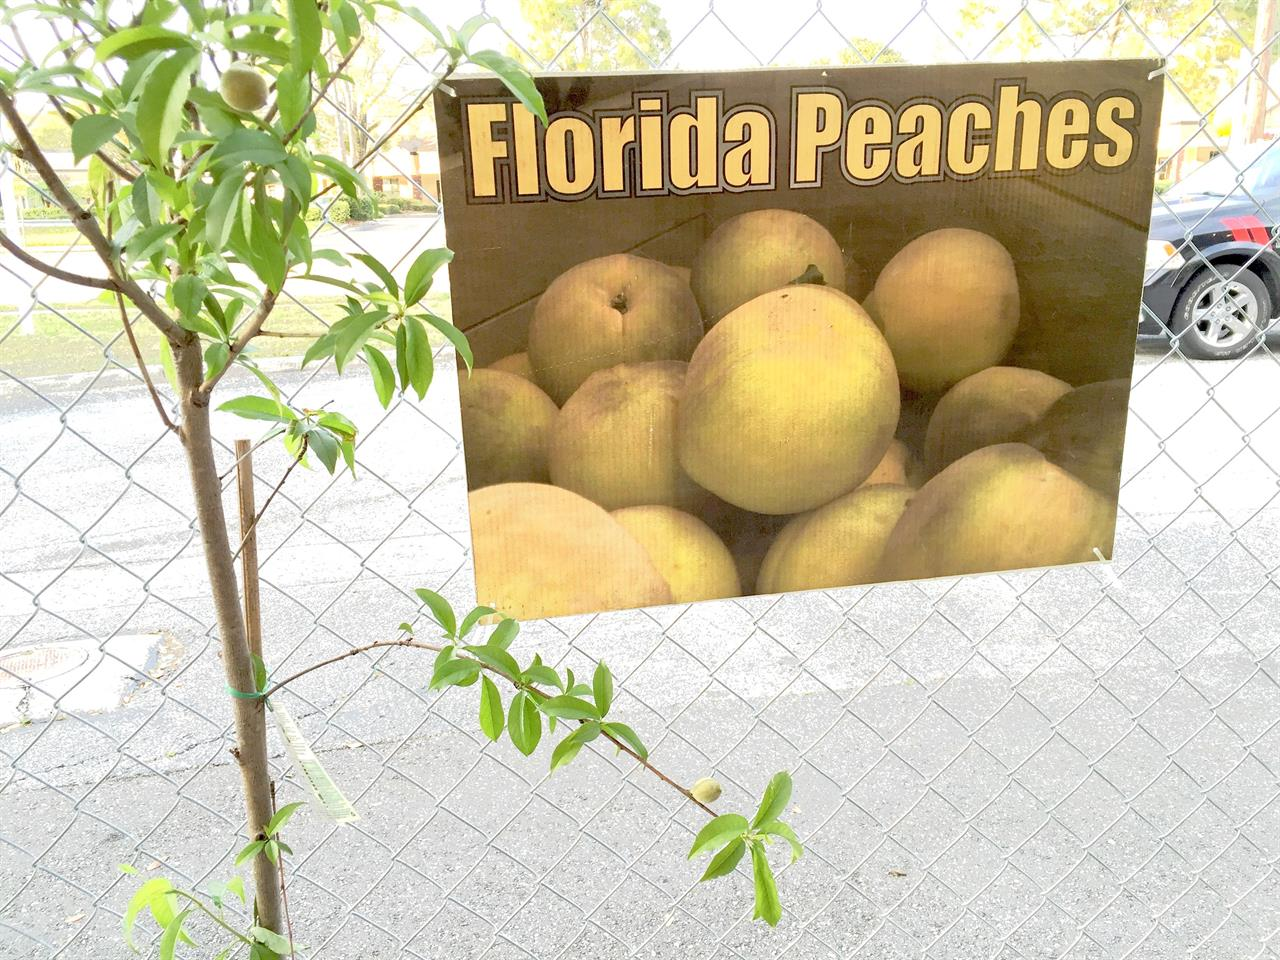 Florida Peach Tree Sale